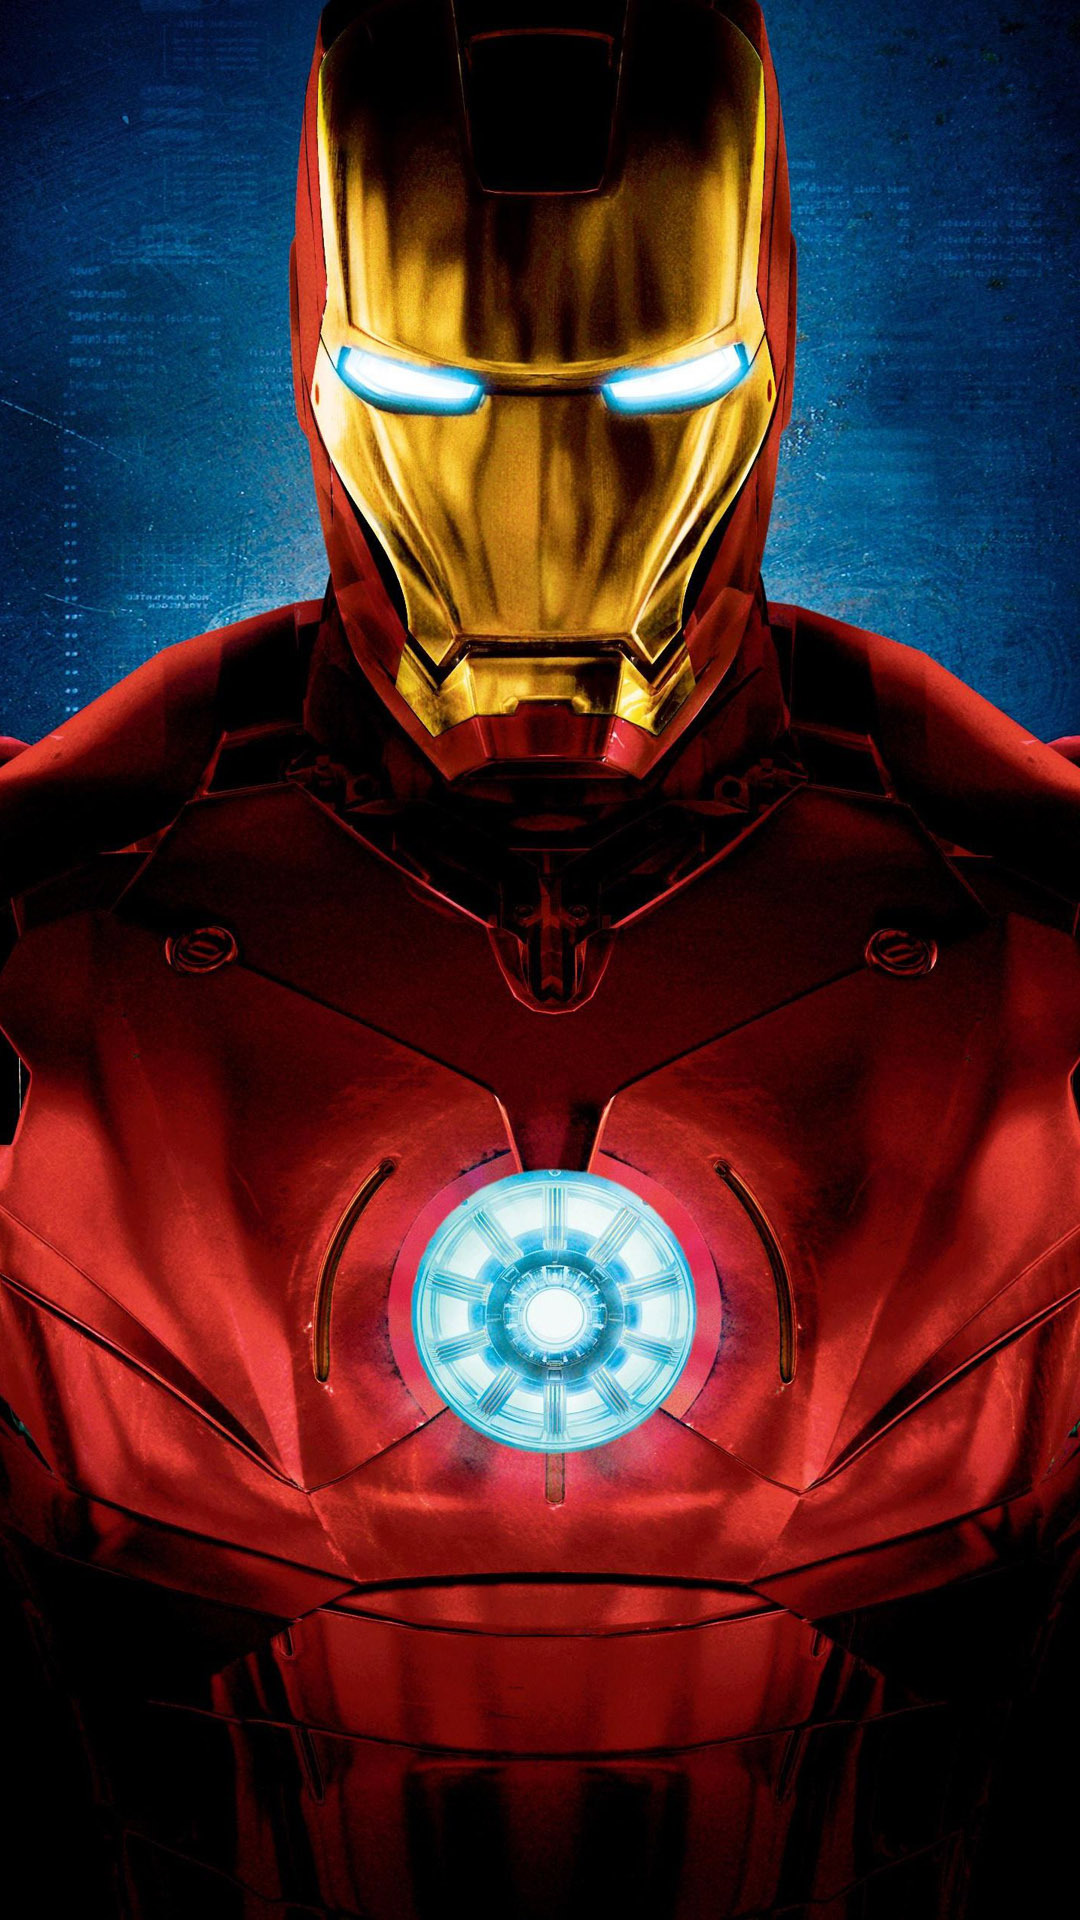 Best Wallpapers For Iphone 6 Hd 10 Hd Iron Man Iphone 6 Wallpapers The Nology